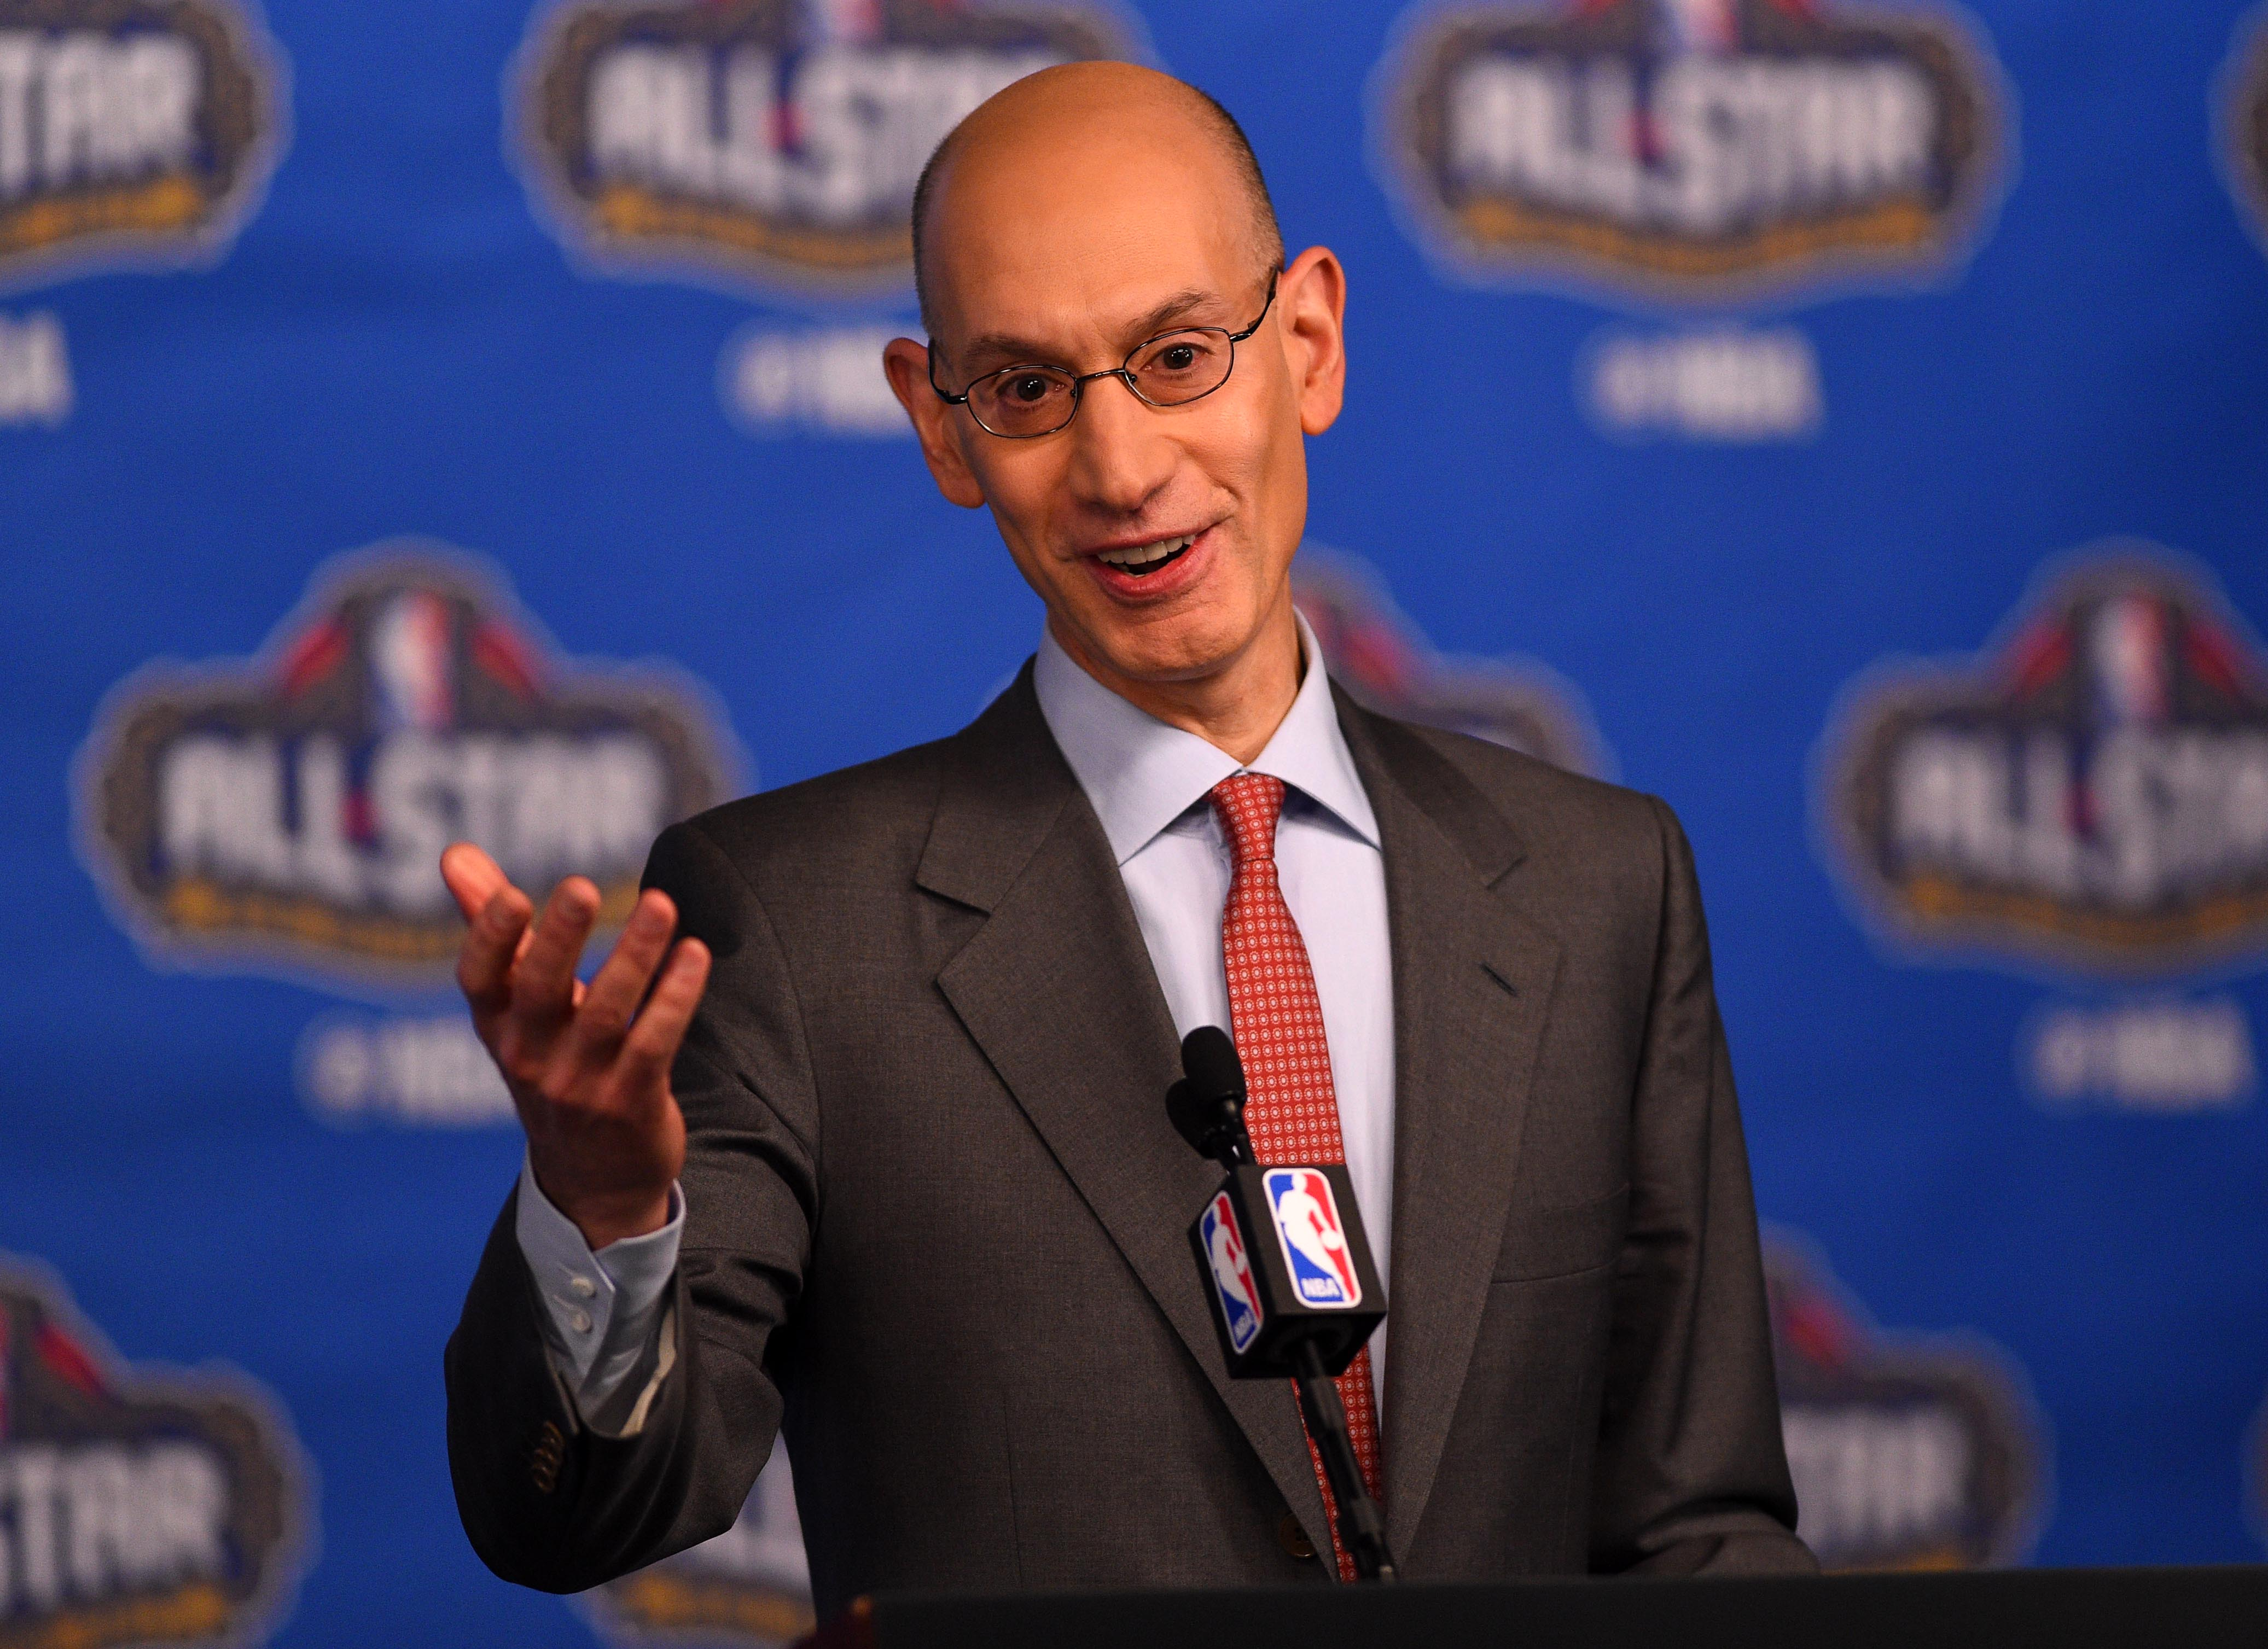 9885832-nba-all-star-game-commissioner-press-conference